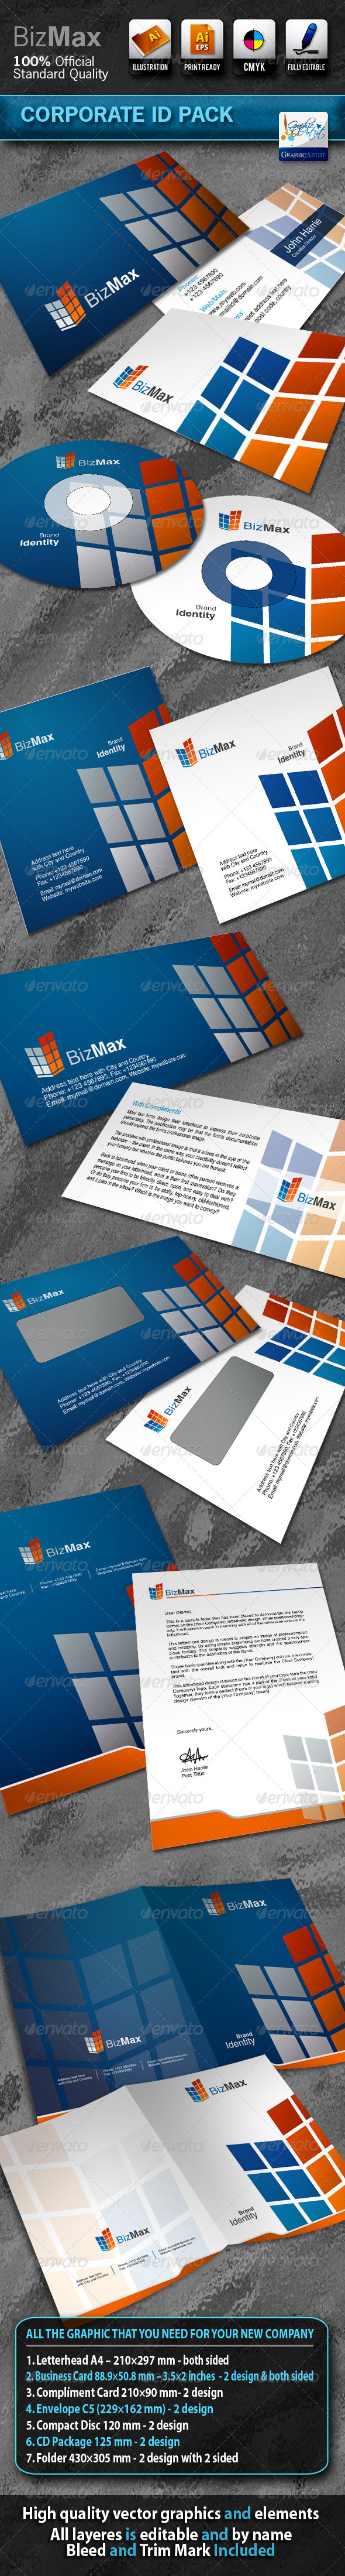 BizMax Business Corporate ID Pack With Logo - Stationery Print Templates